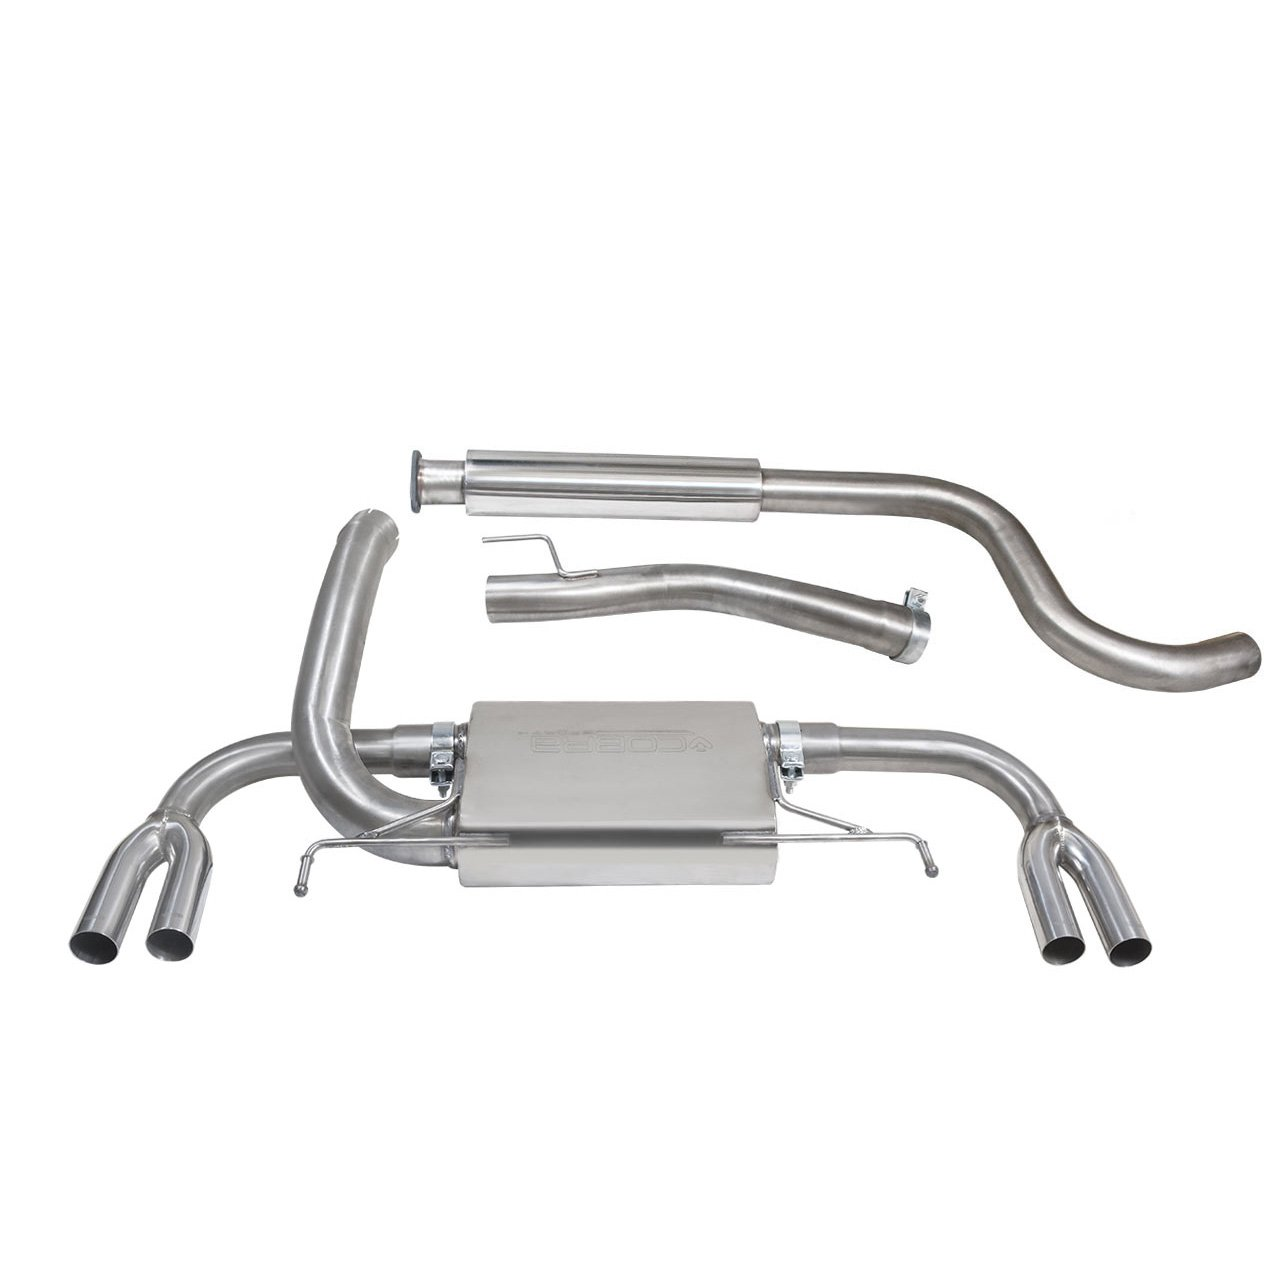 Vauxhall Astra J VXR (12-19) Cat Back Sports Exhaust System